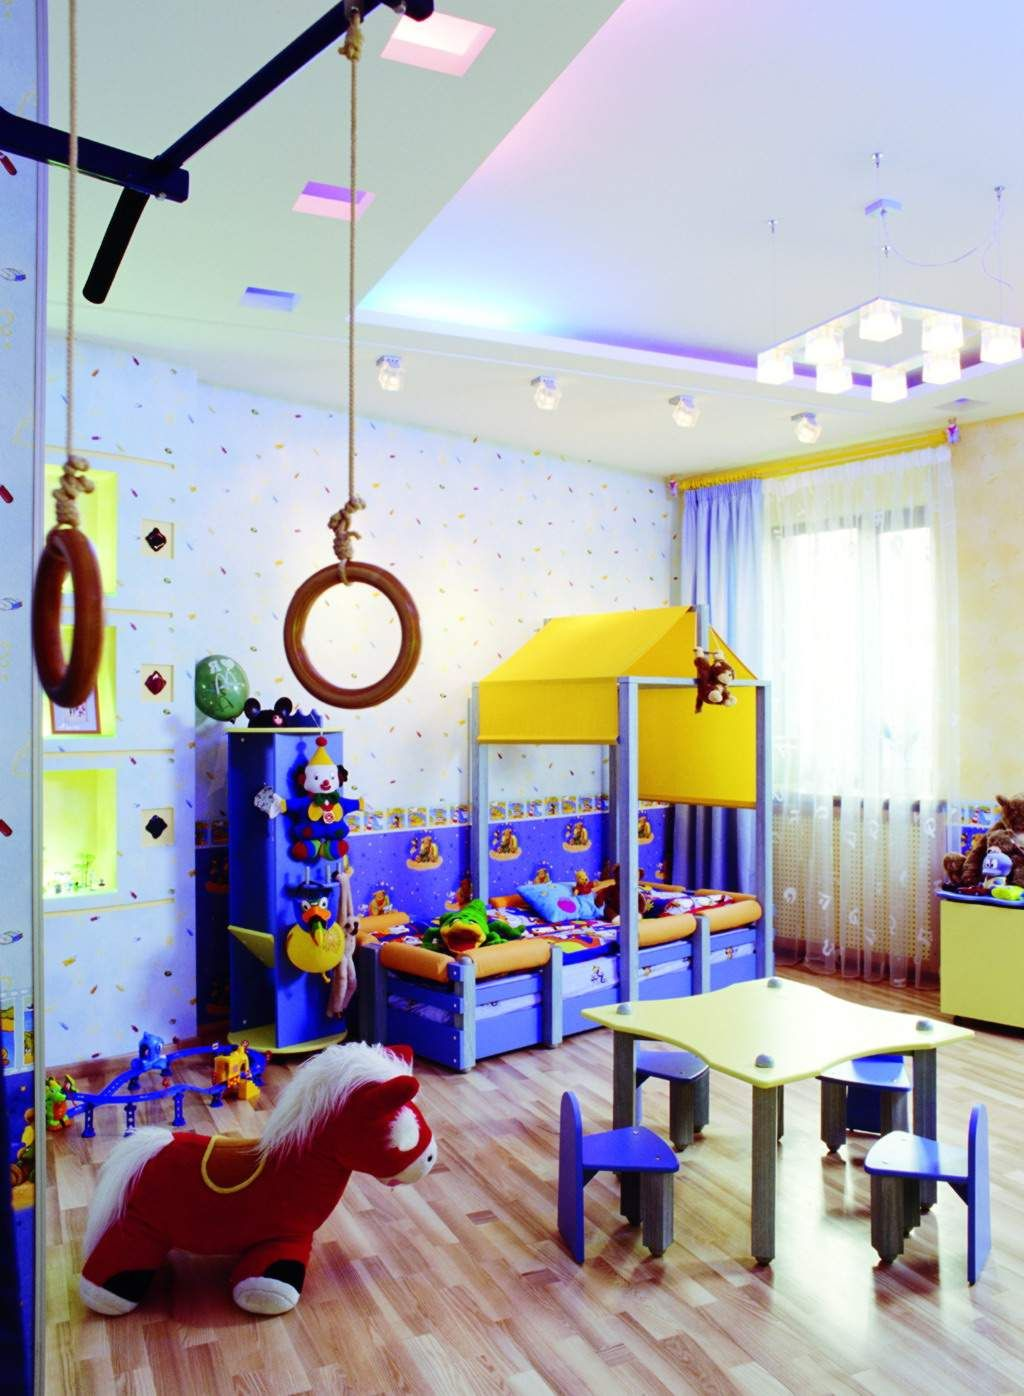 Kids bedroom kids room interior design with play and learn area kids room design with wallpaper - Room decoration ideas for teenagers ...